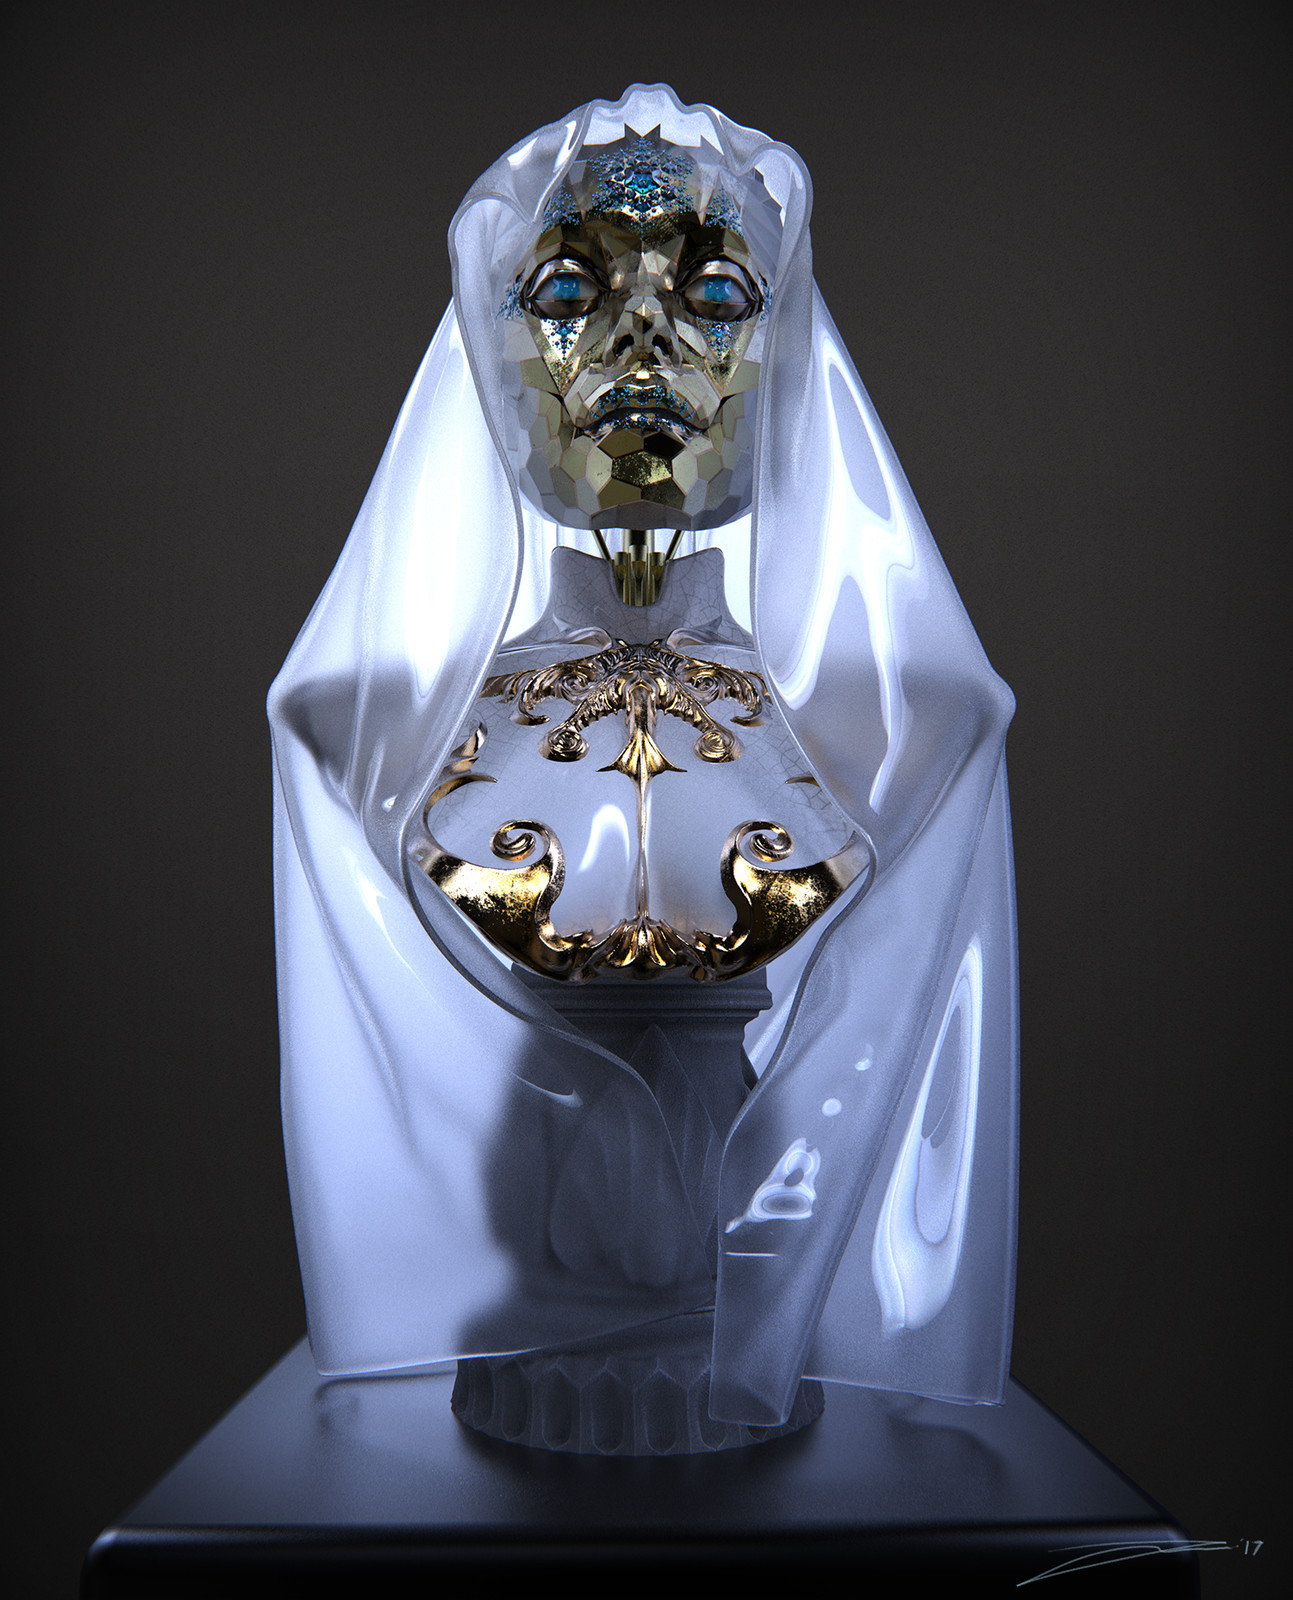 Our Lady of Global Illumination (AKA Wintermute)